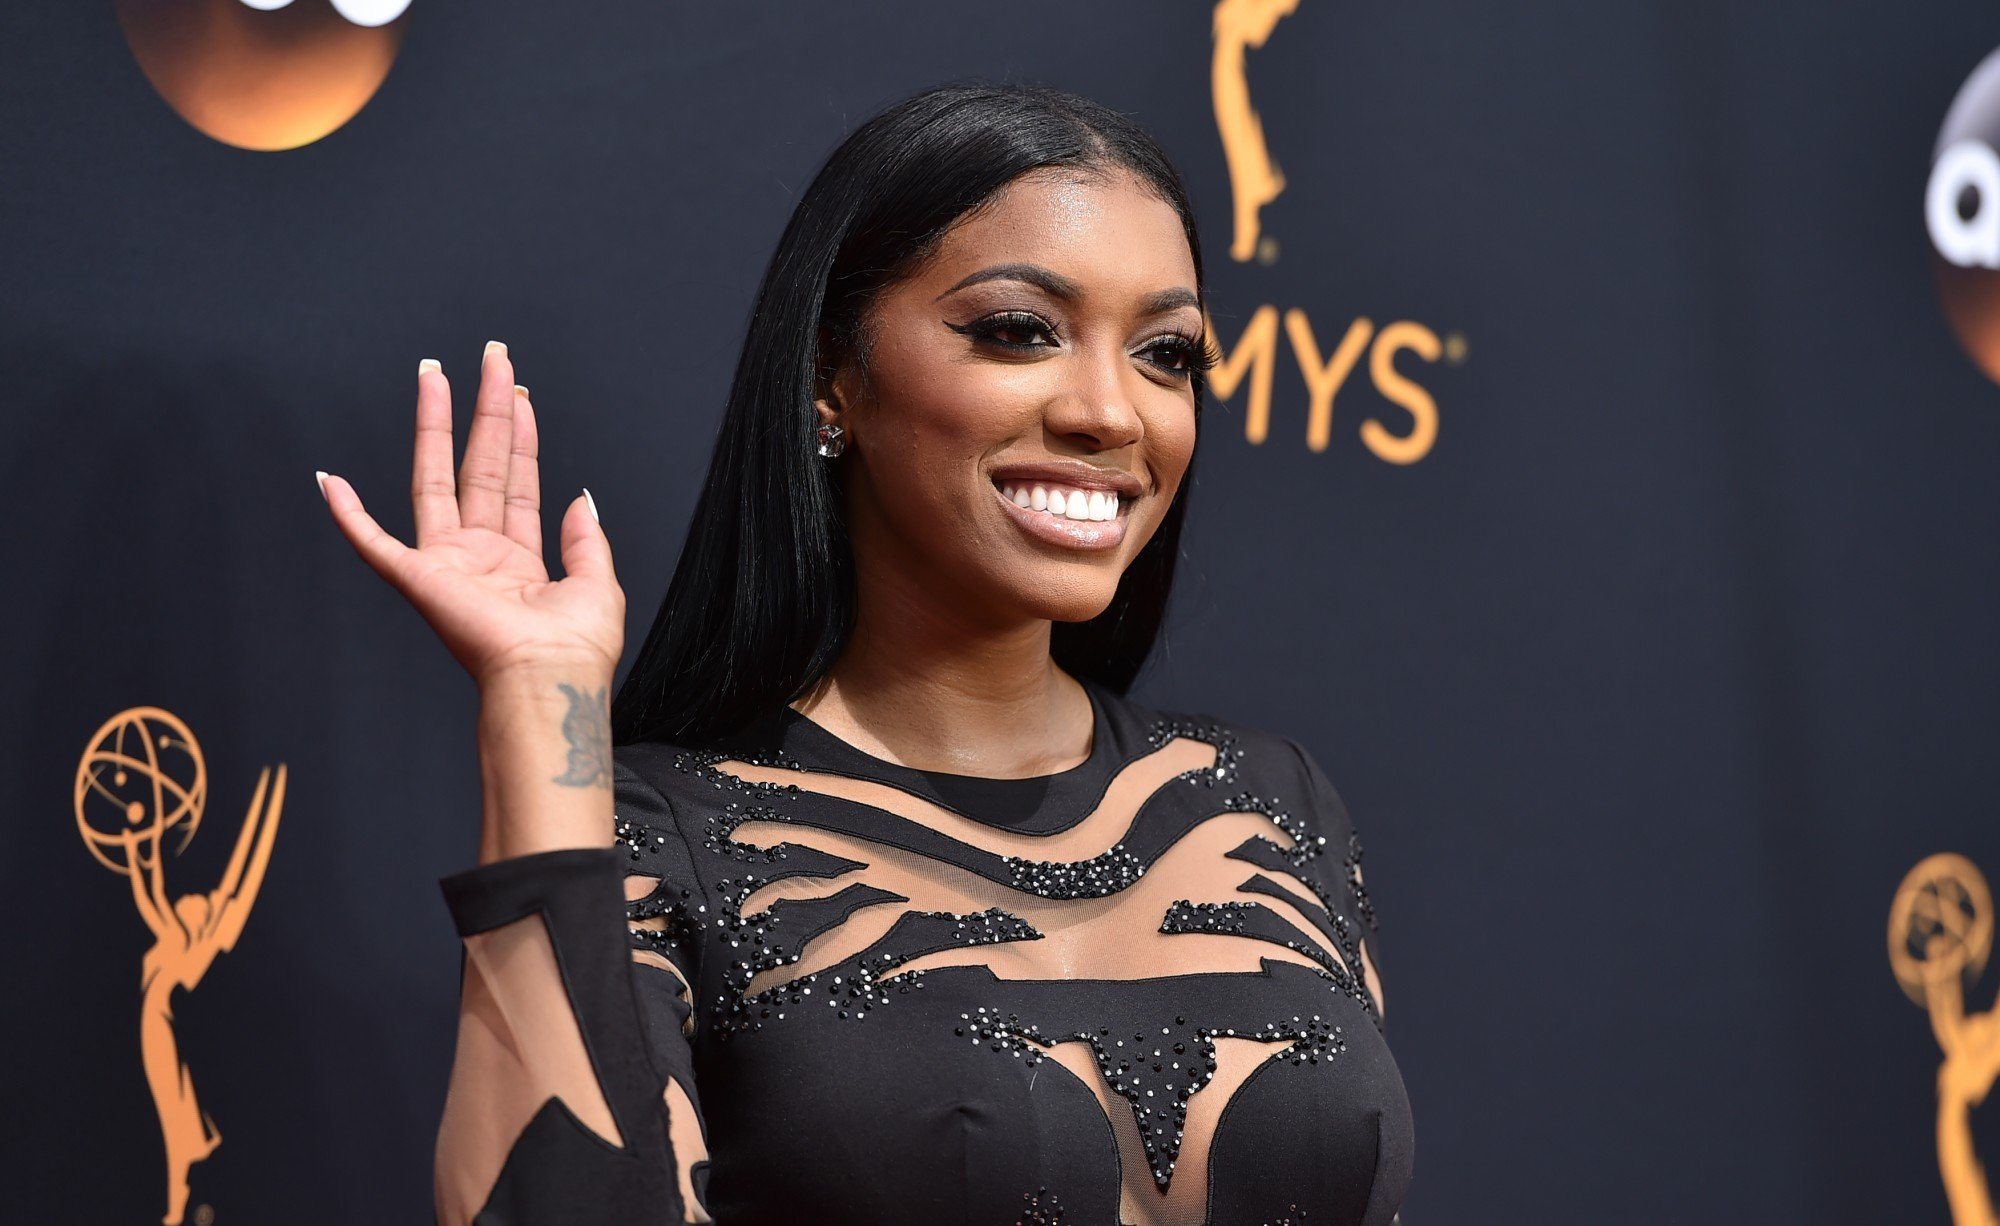 Porsha Williams' Daughter Pilar Jhena Is Twining With Both Her Parents – See The Amazing Photos